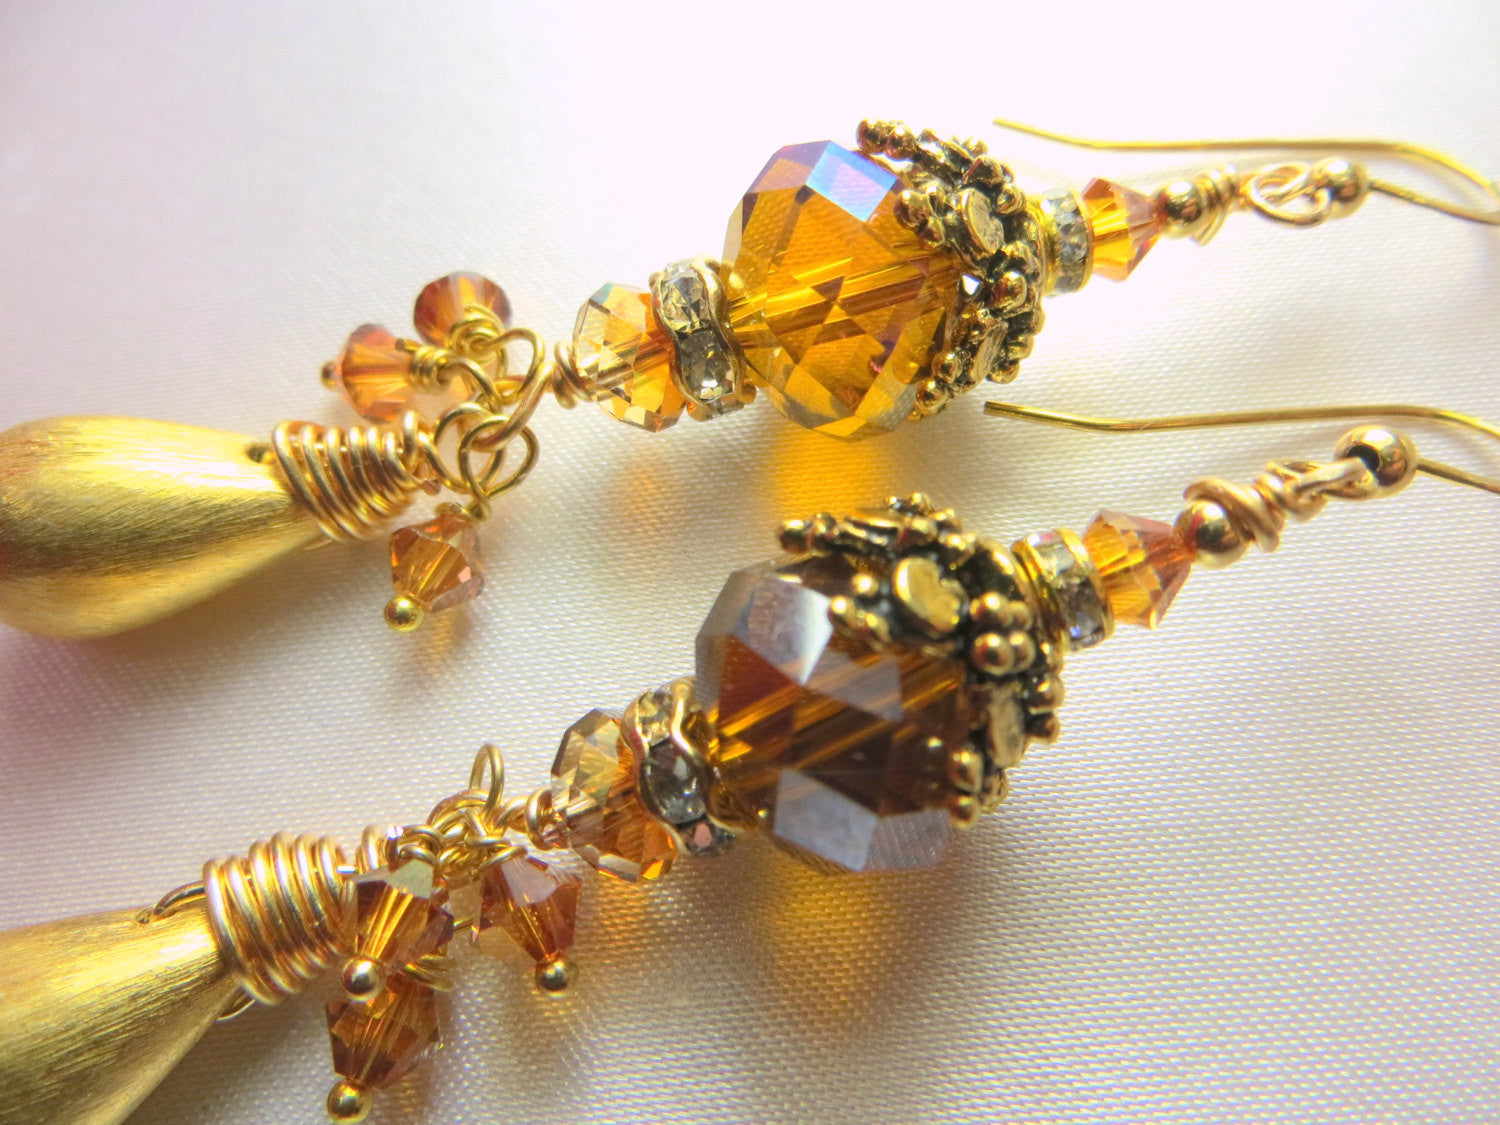 Swarovski Crystal Copper Large Rondelles with 22k plated Brushed Gold Drops - Odyssey Creations